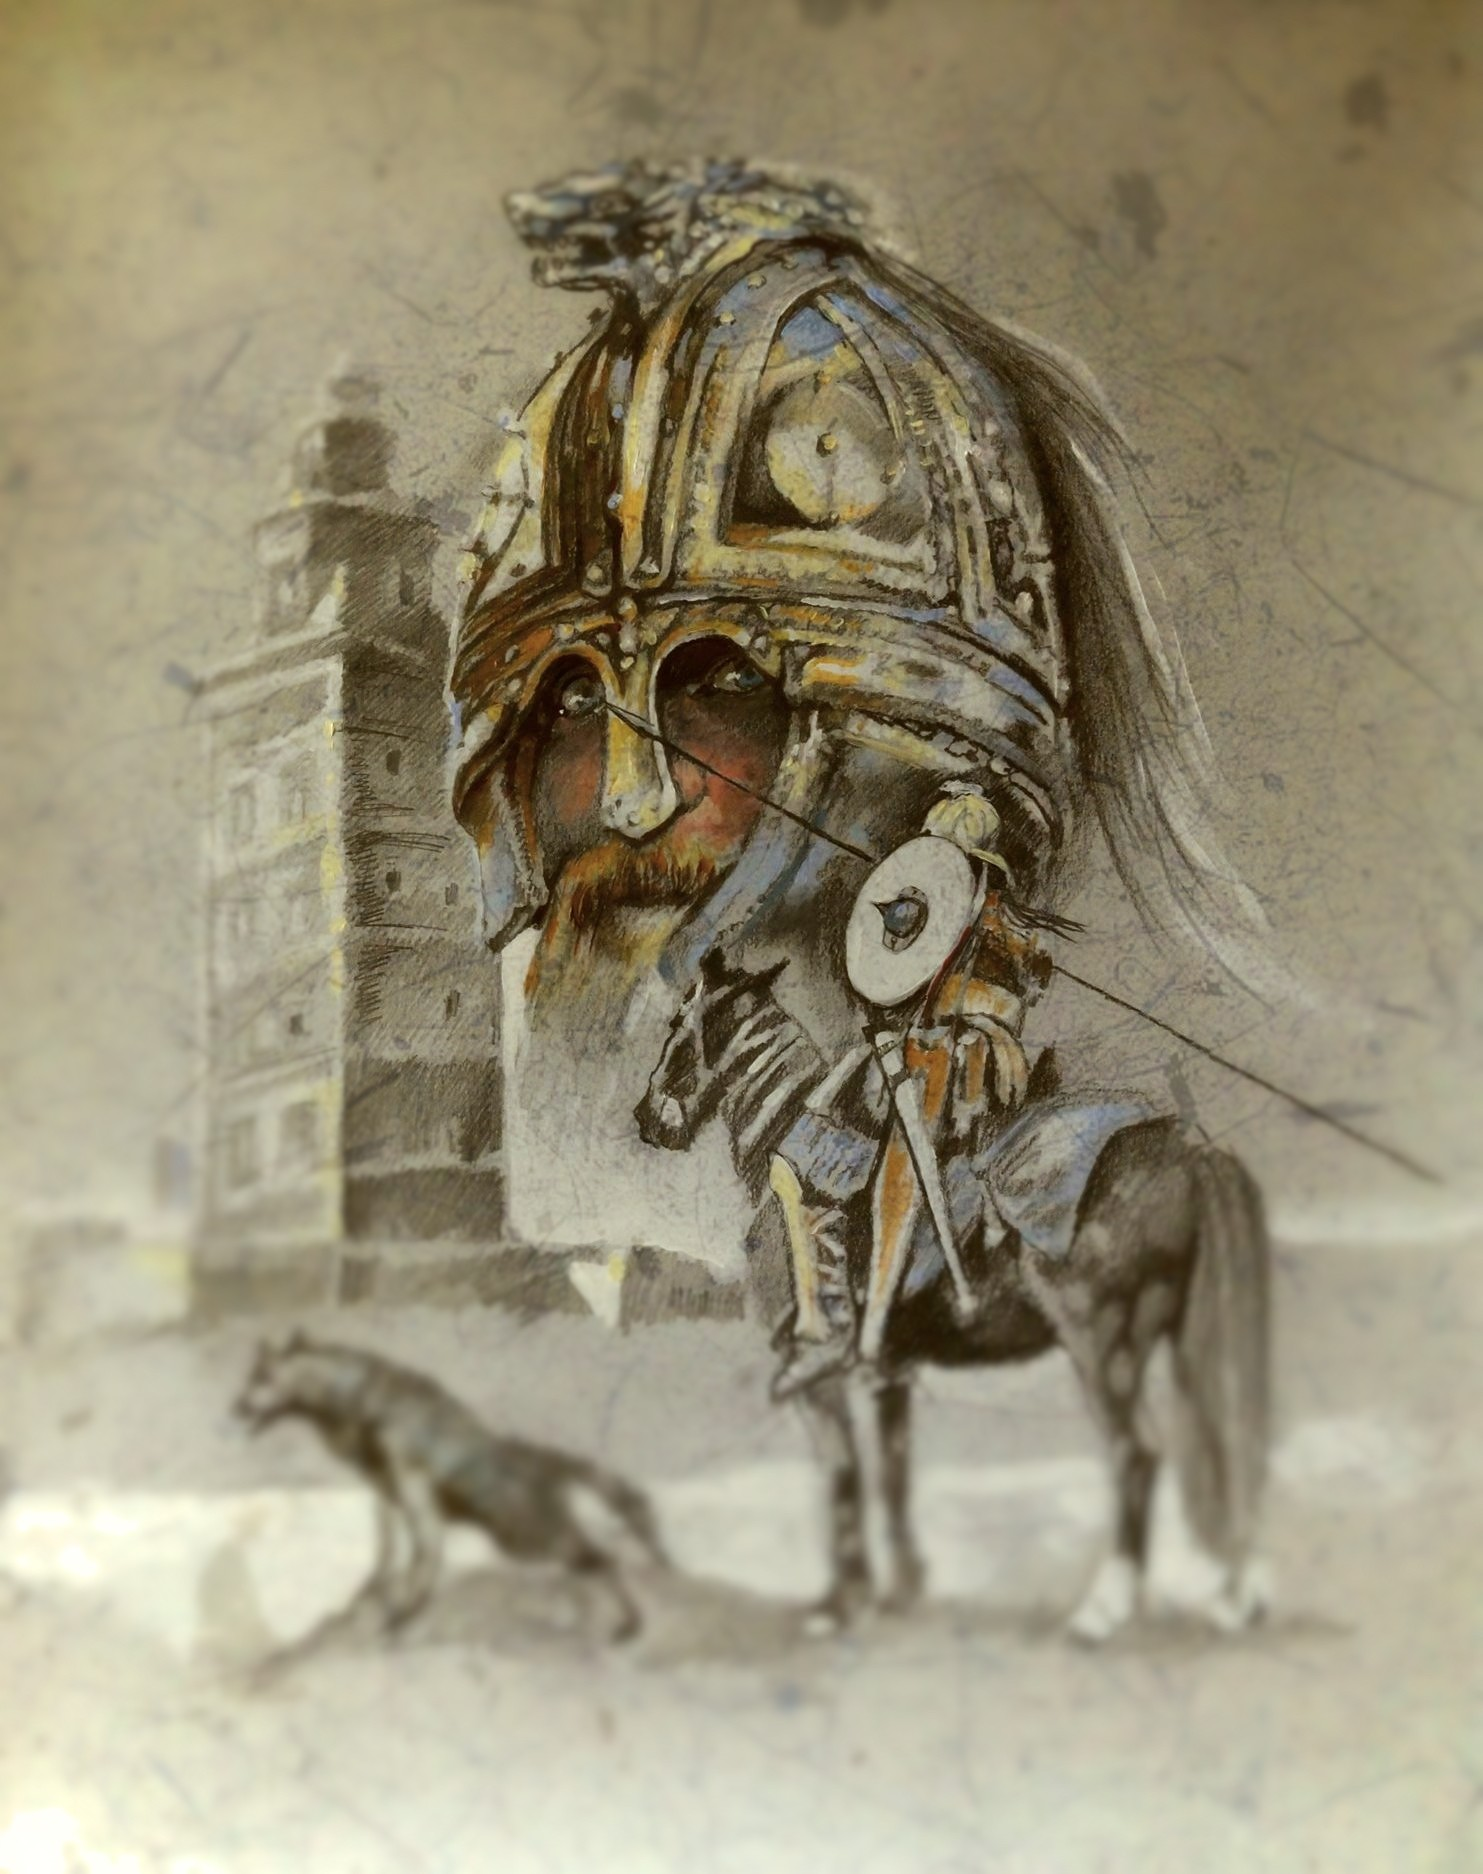 THE BARBARIANS: VISIGOTHS AND VANDALS 5TH TO 8TH CENTURY AD